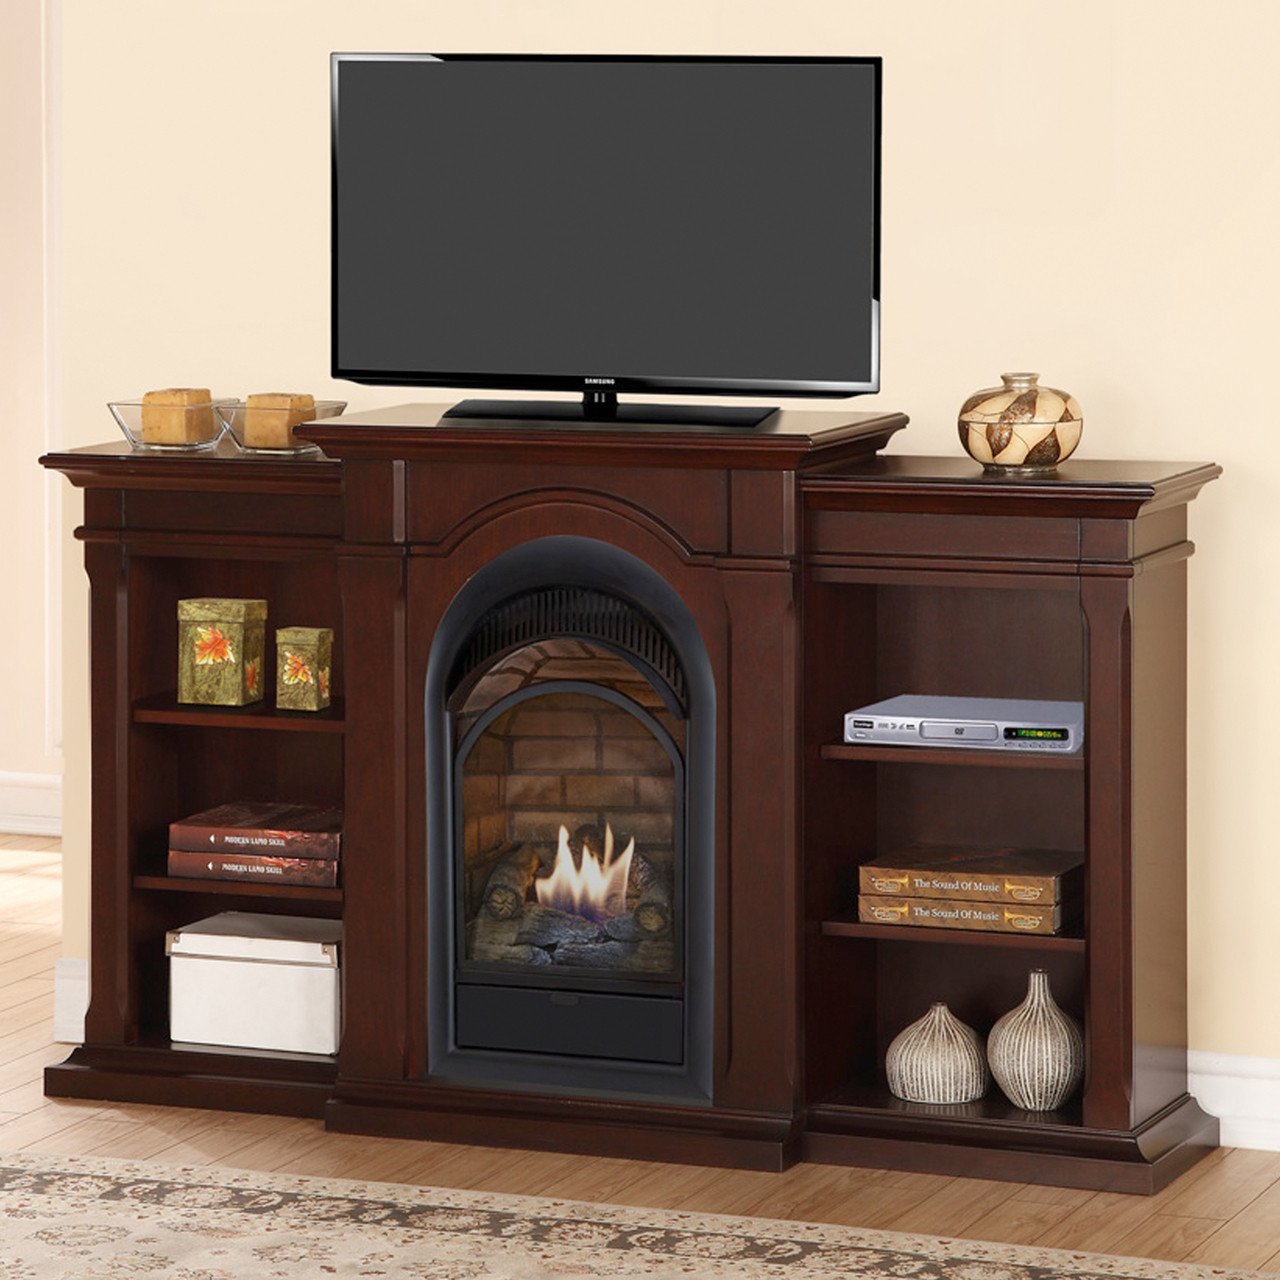 duluth forge dual fuel ventless fireplace with bookshelves 15 000 rh factorybuysdirect com ventless natural gas fireplace entertainment center ventless natural gas fireplace entertainment center